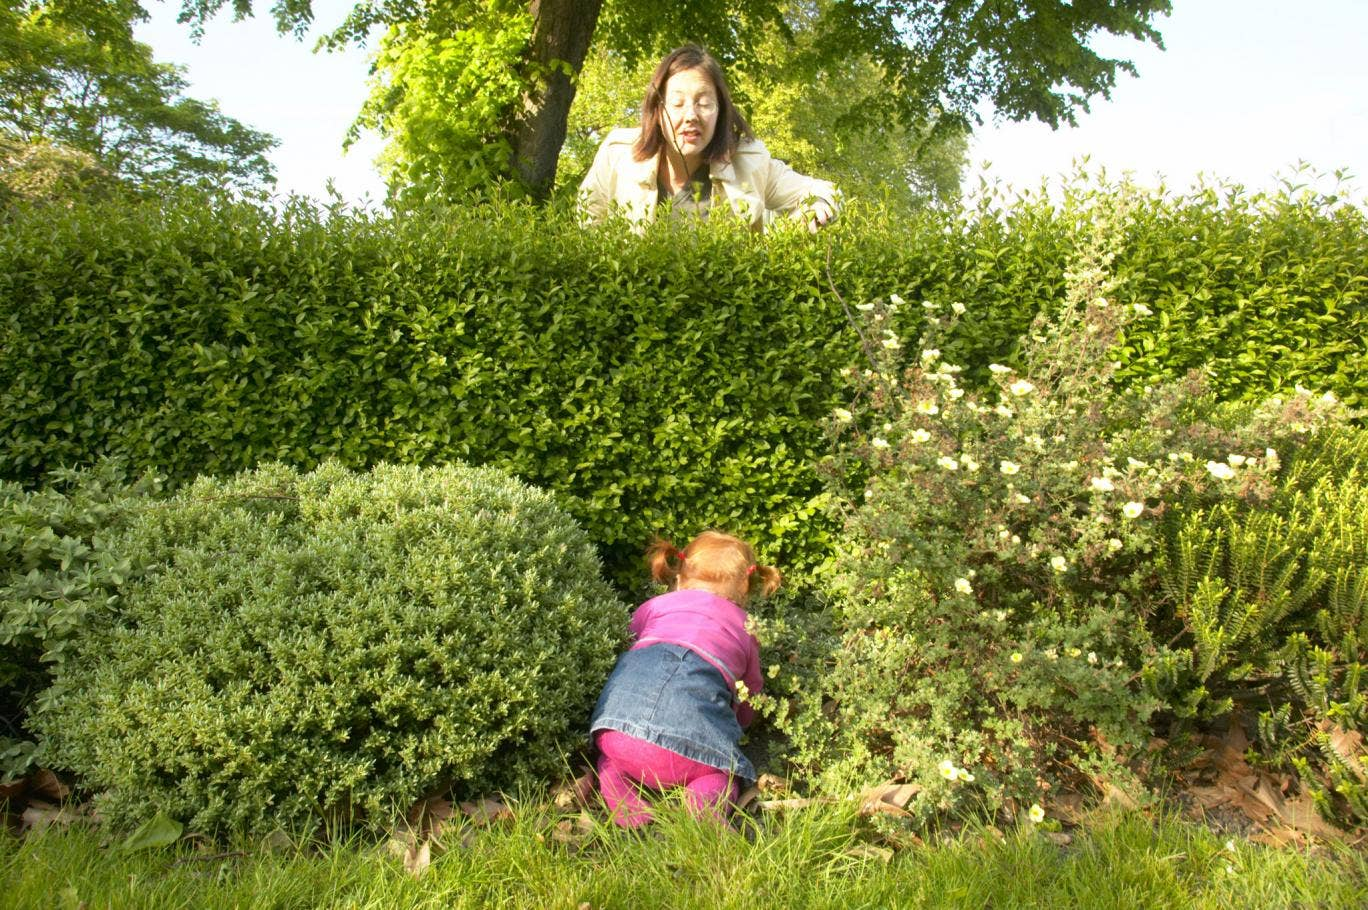 Toddlers will explore the undergrowth – so it might be best to dig up anything poisonous